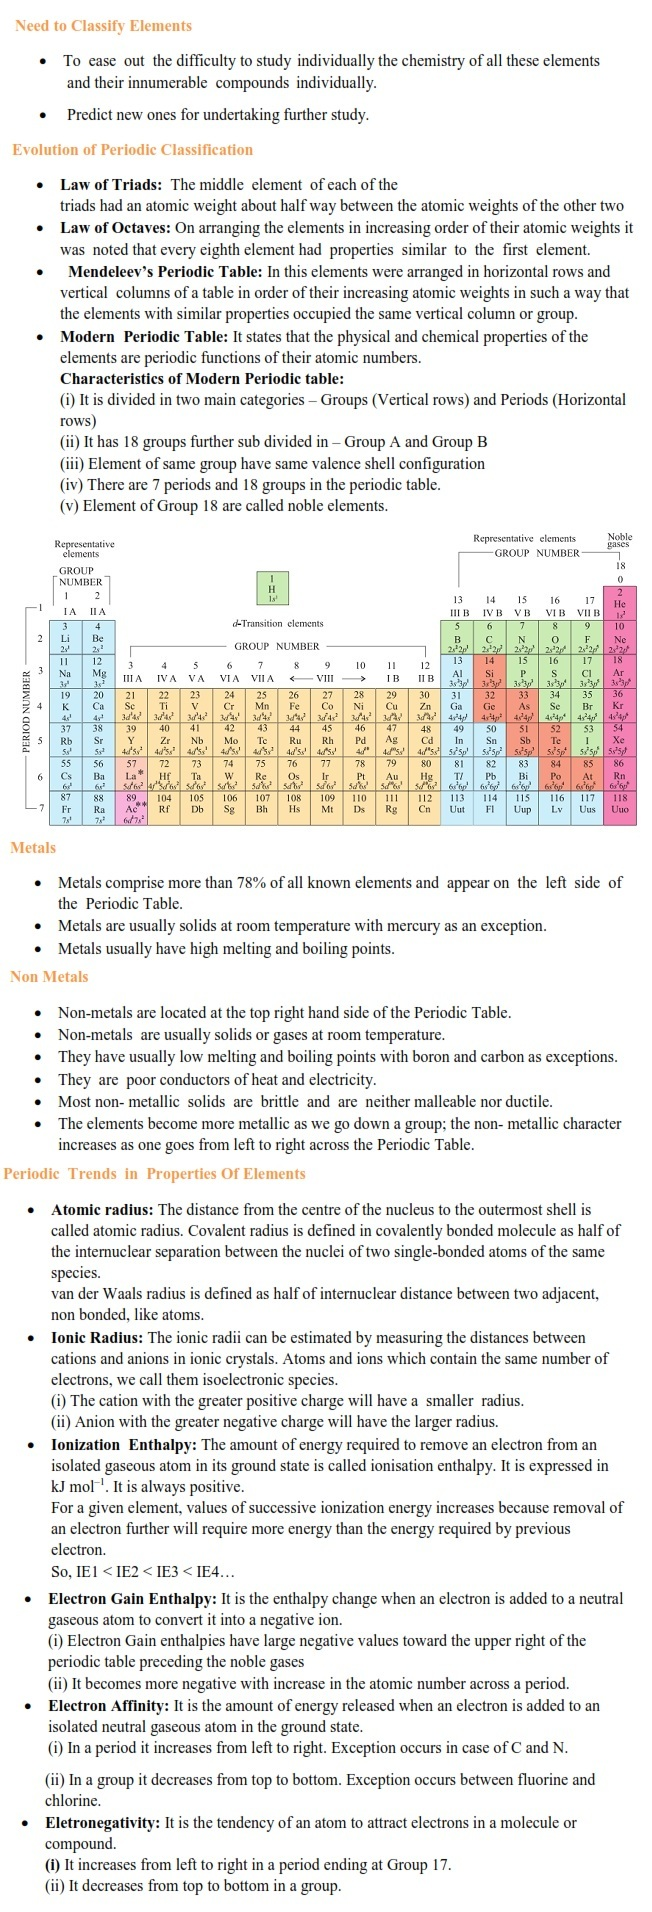 Periodic Table Extra Practice Worksheet Answer Key | Elcho ...